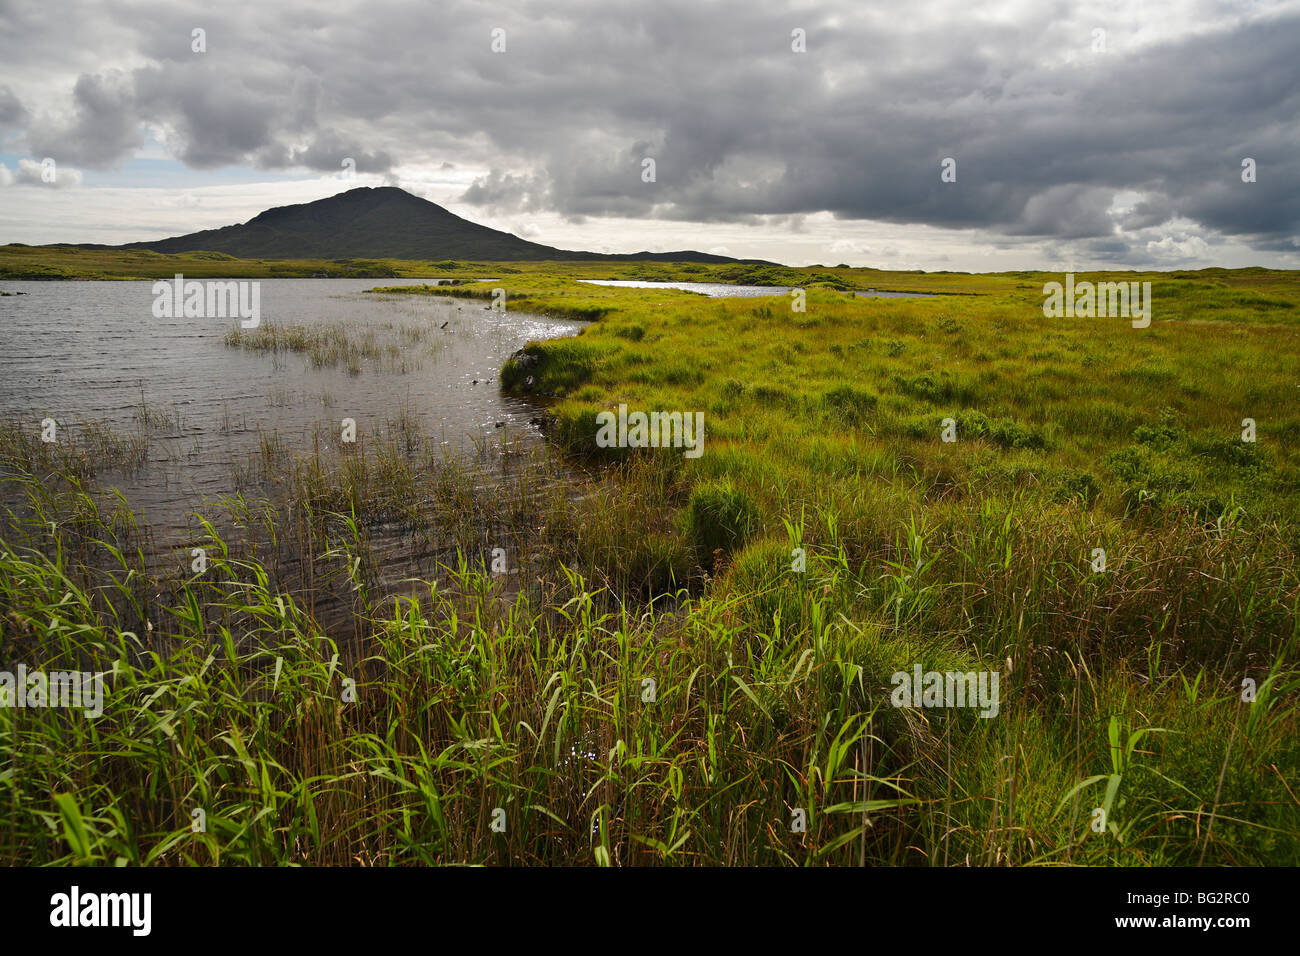 moorlands near Glinsk in the South of Connemara, Ireland - Stock Image